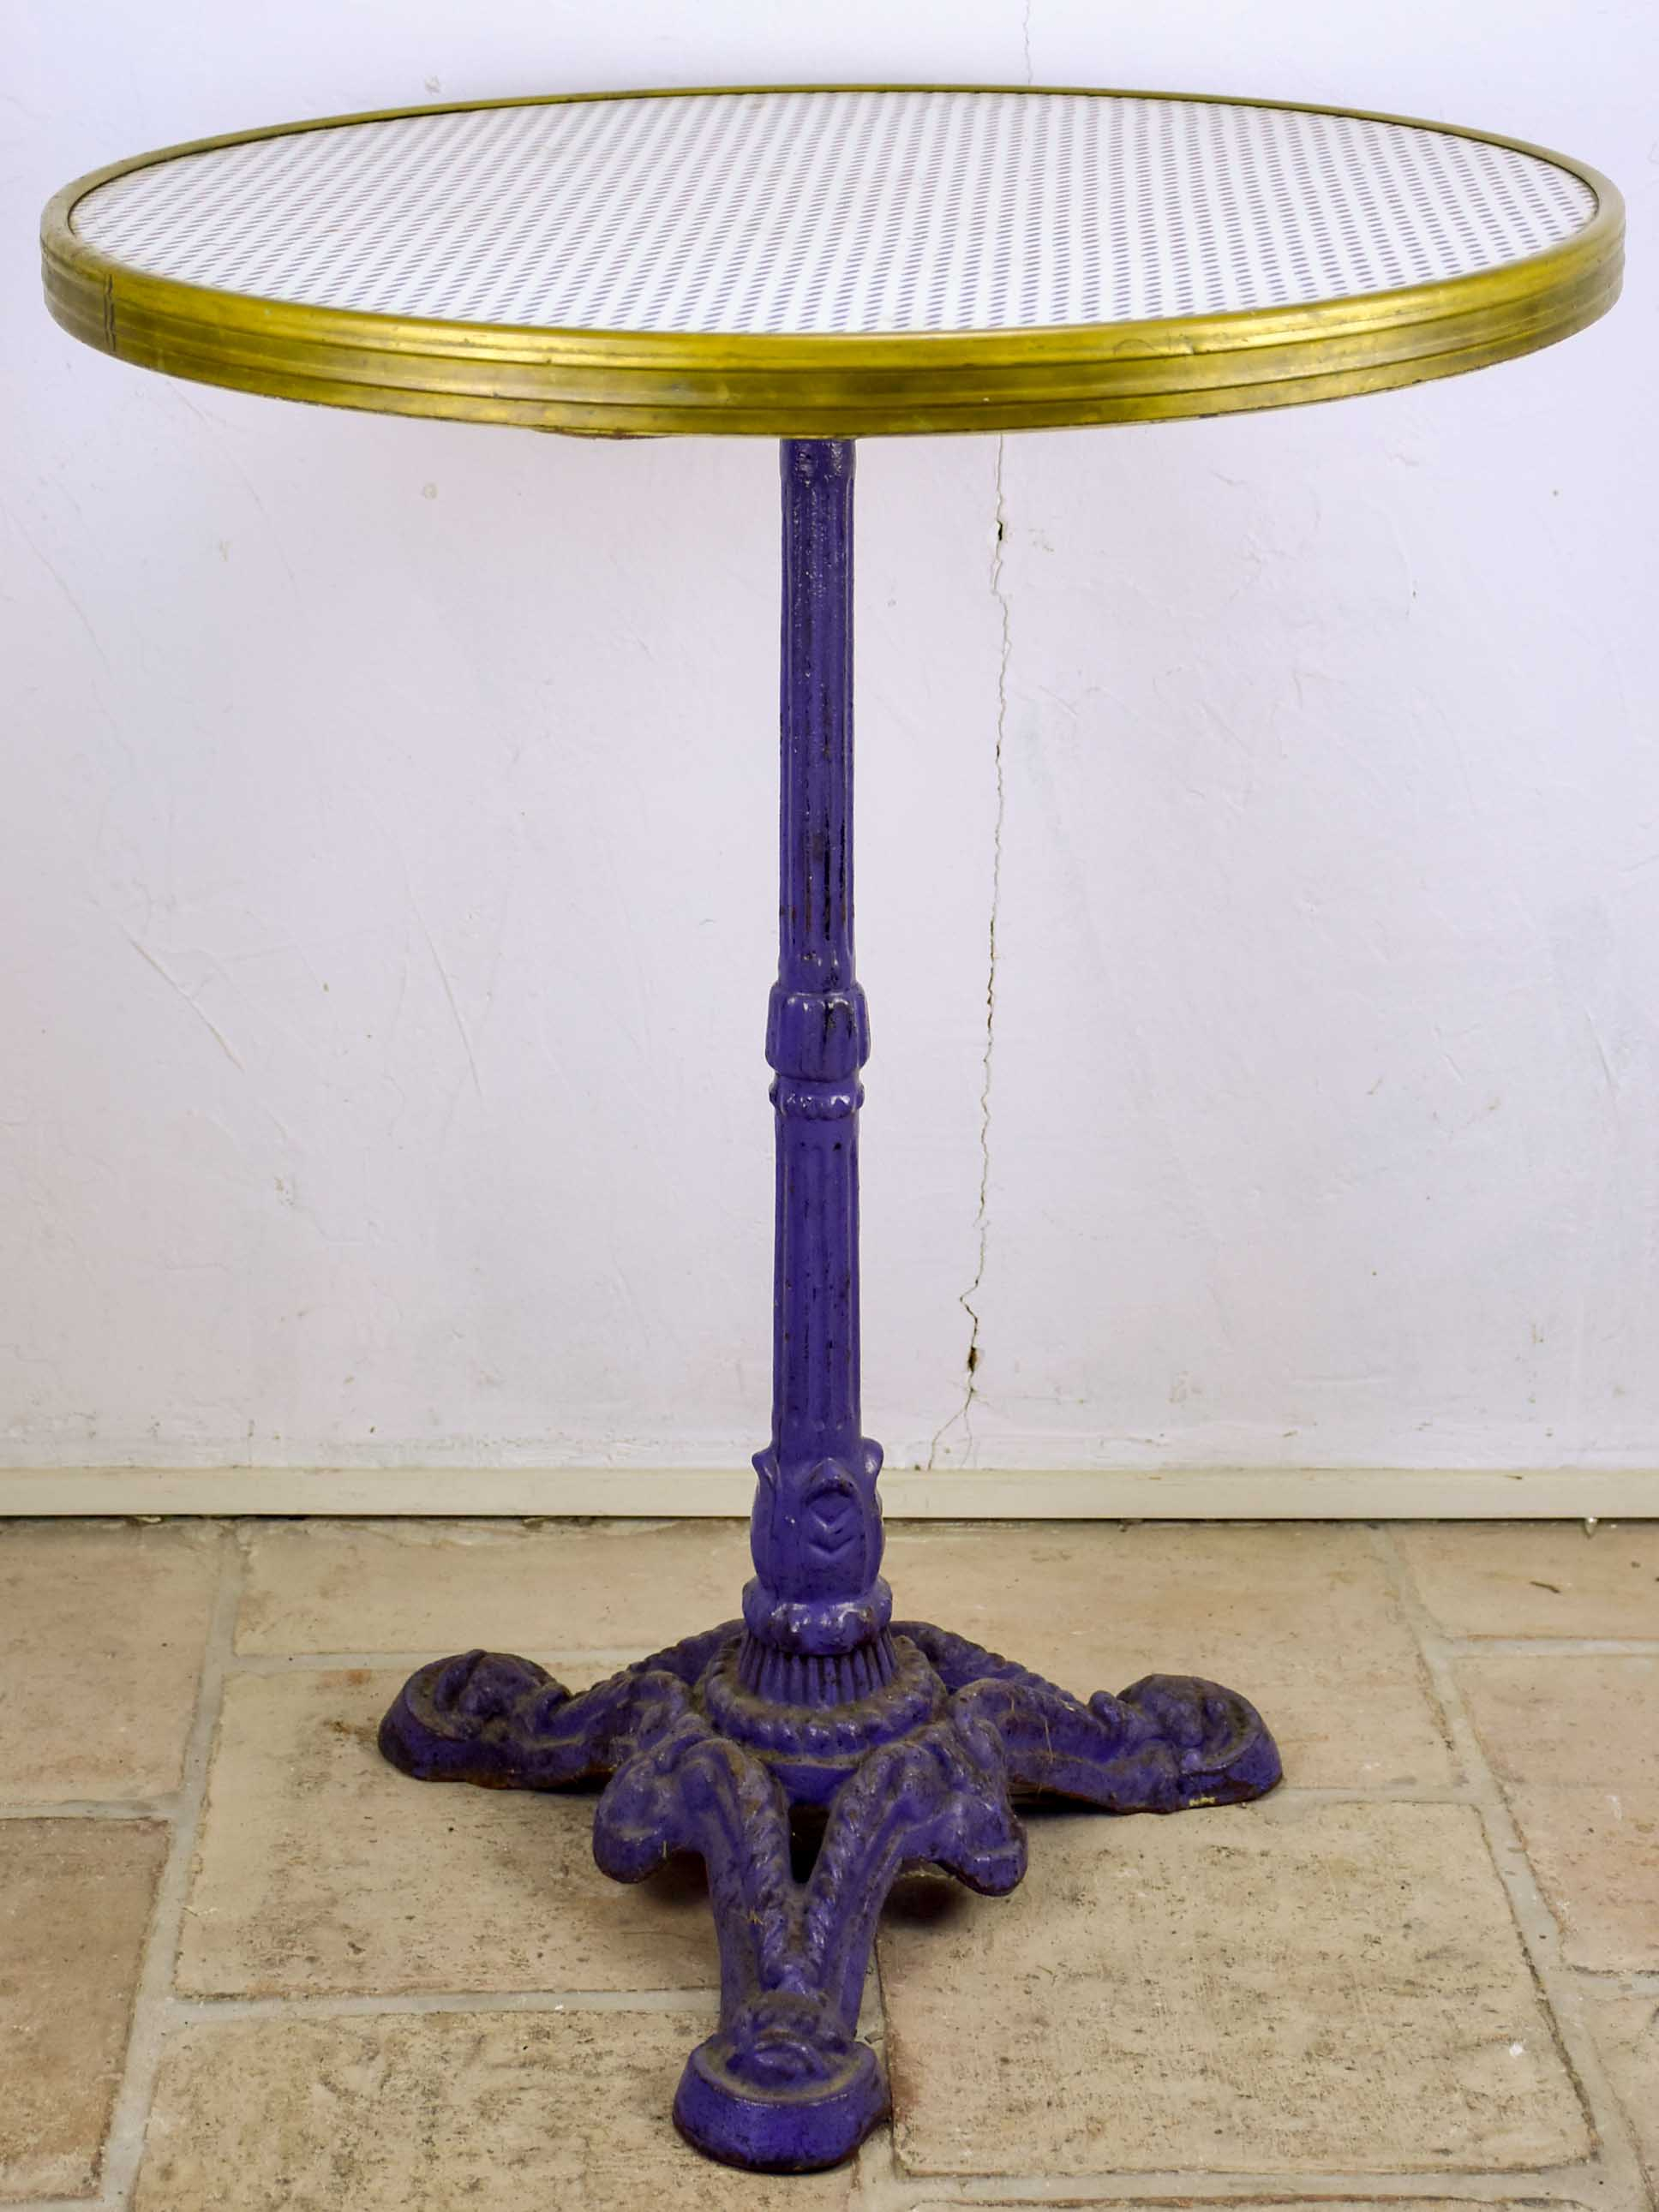 Vintage French bistro table with blue cast iron base